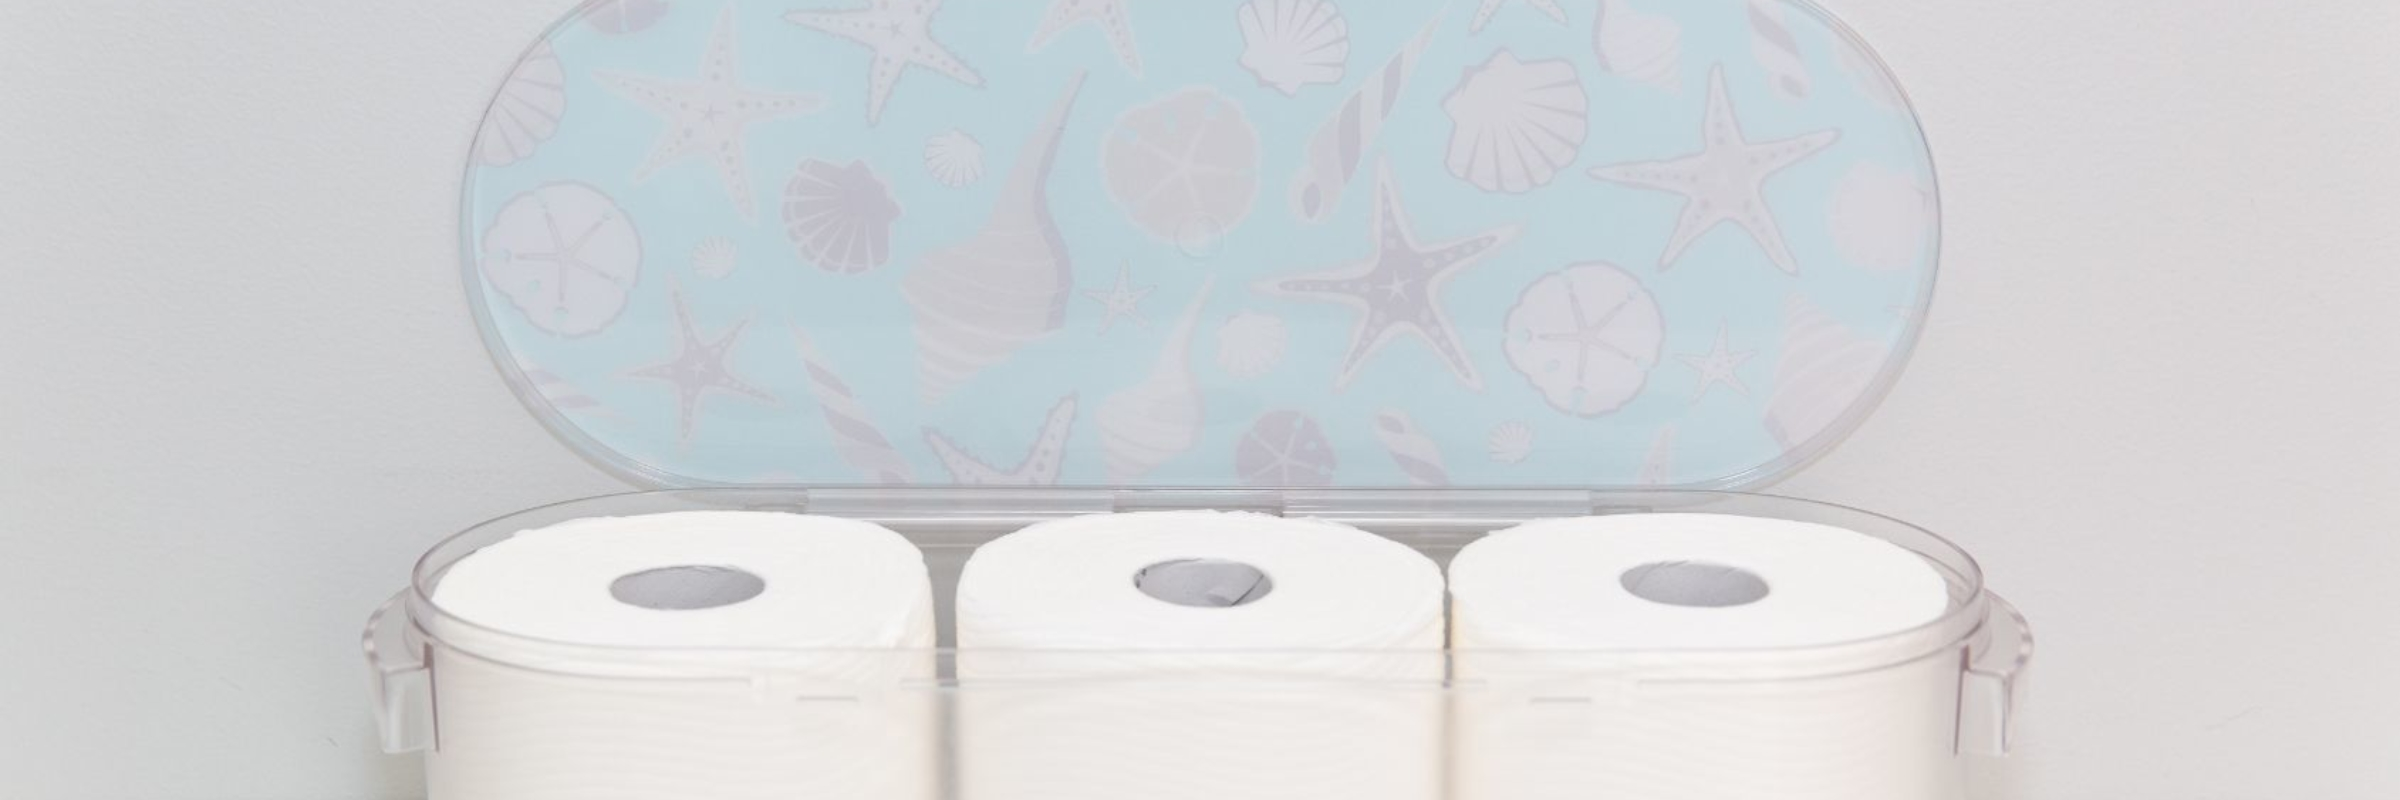 Nykia Designs - Koribox for Toilet Paper Storage